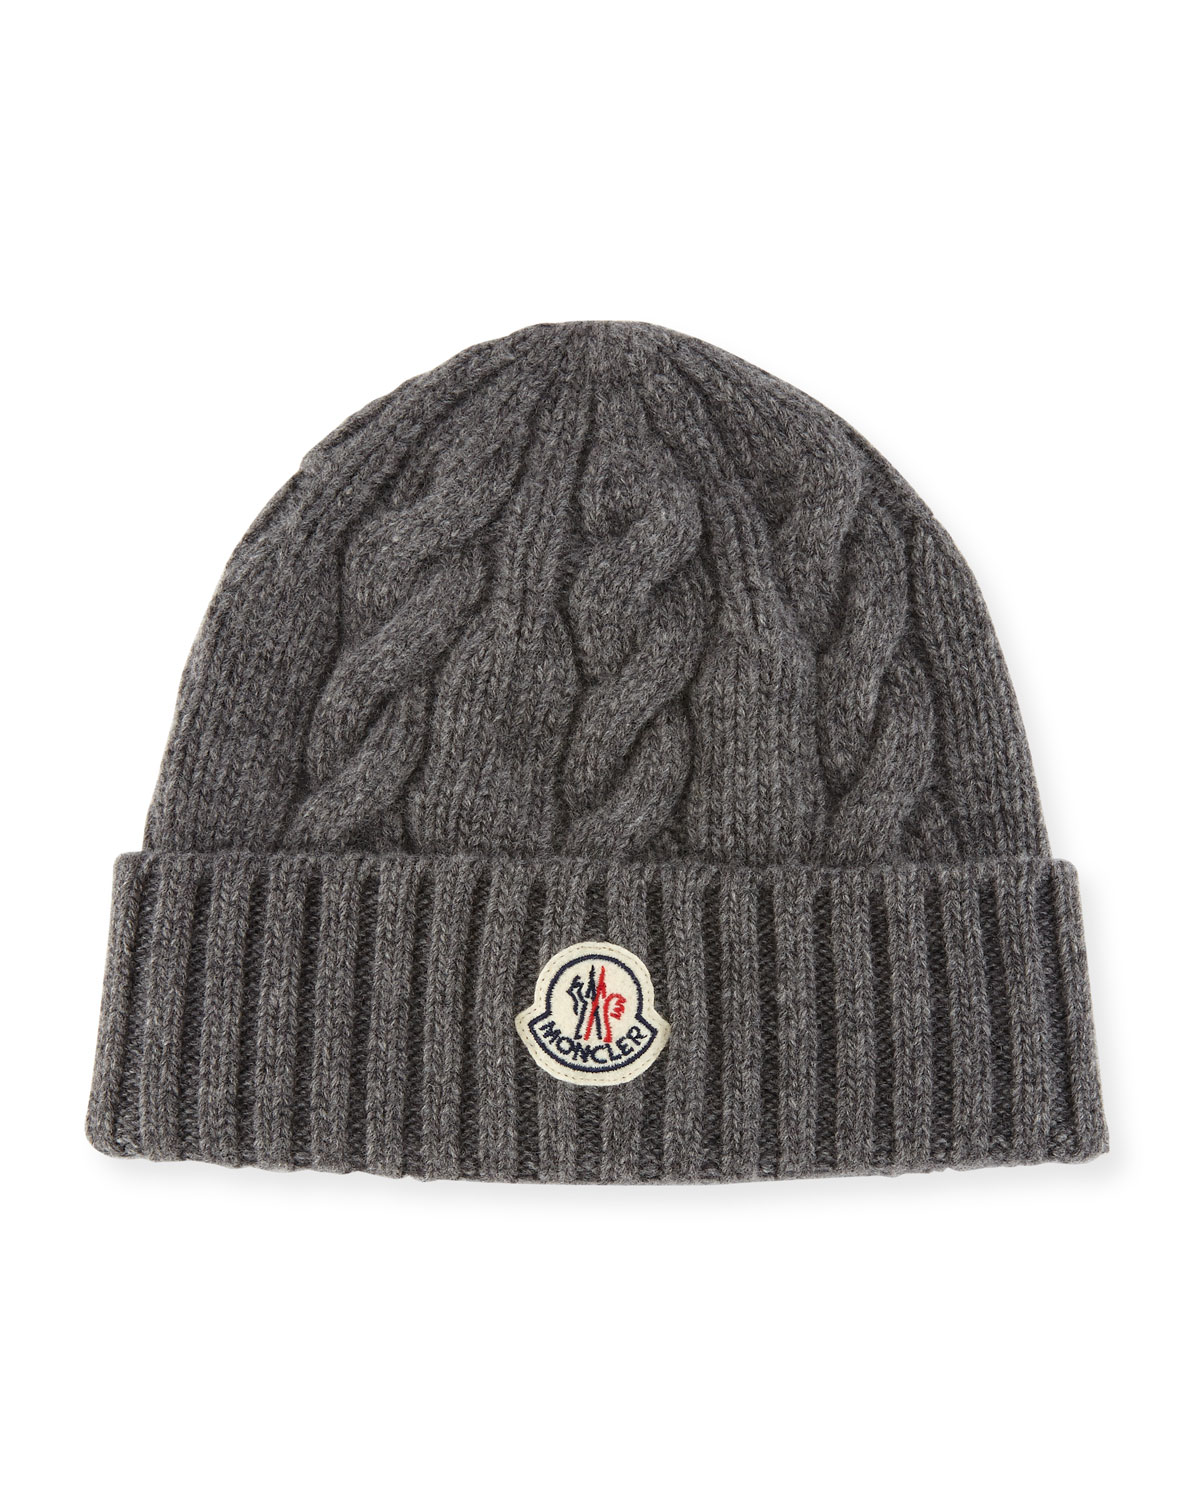 6a9b1fb6a7e Moncler Men s Cable-Knit Wool Beanie Hat